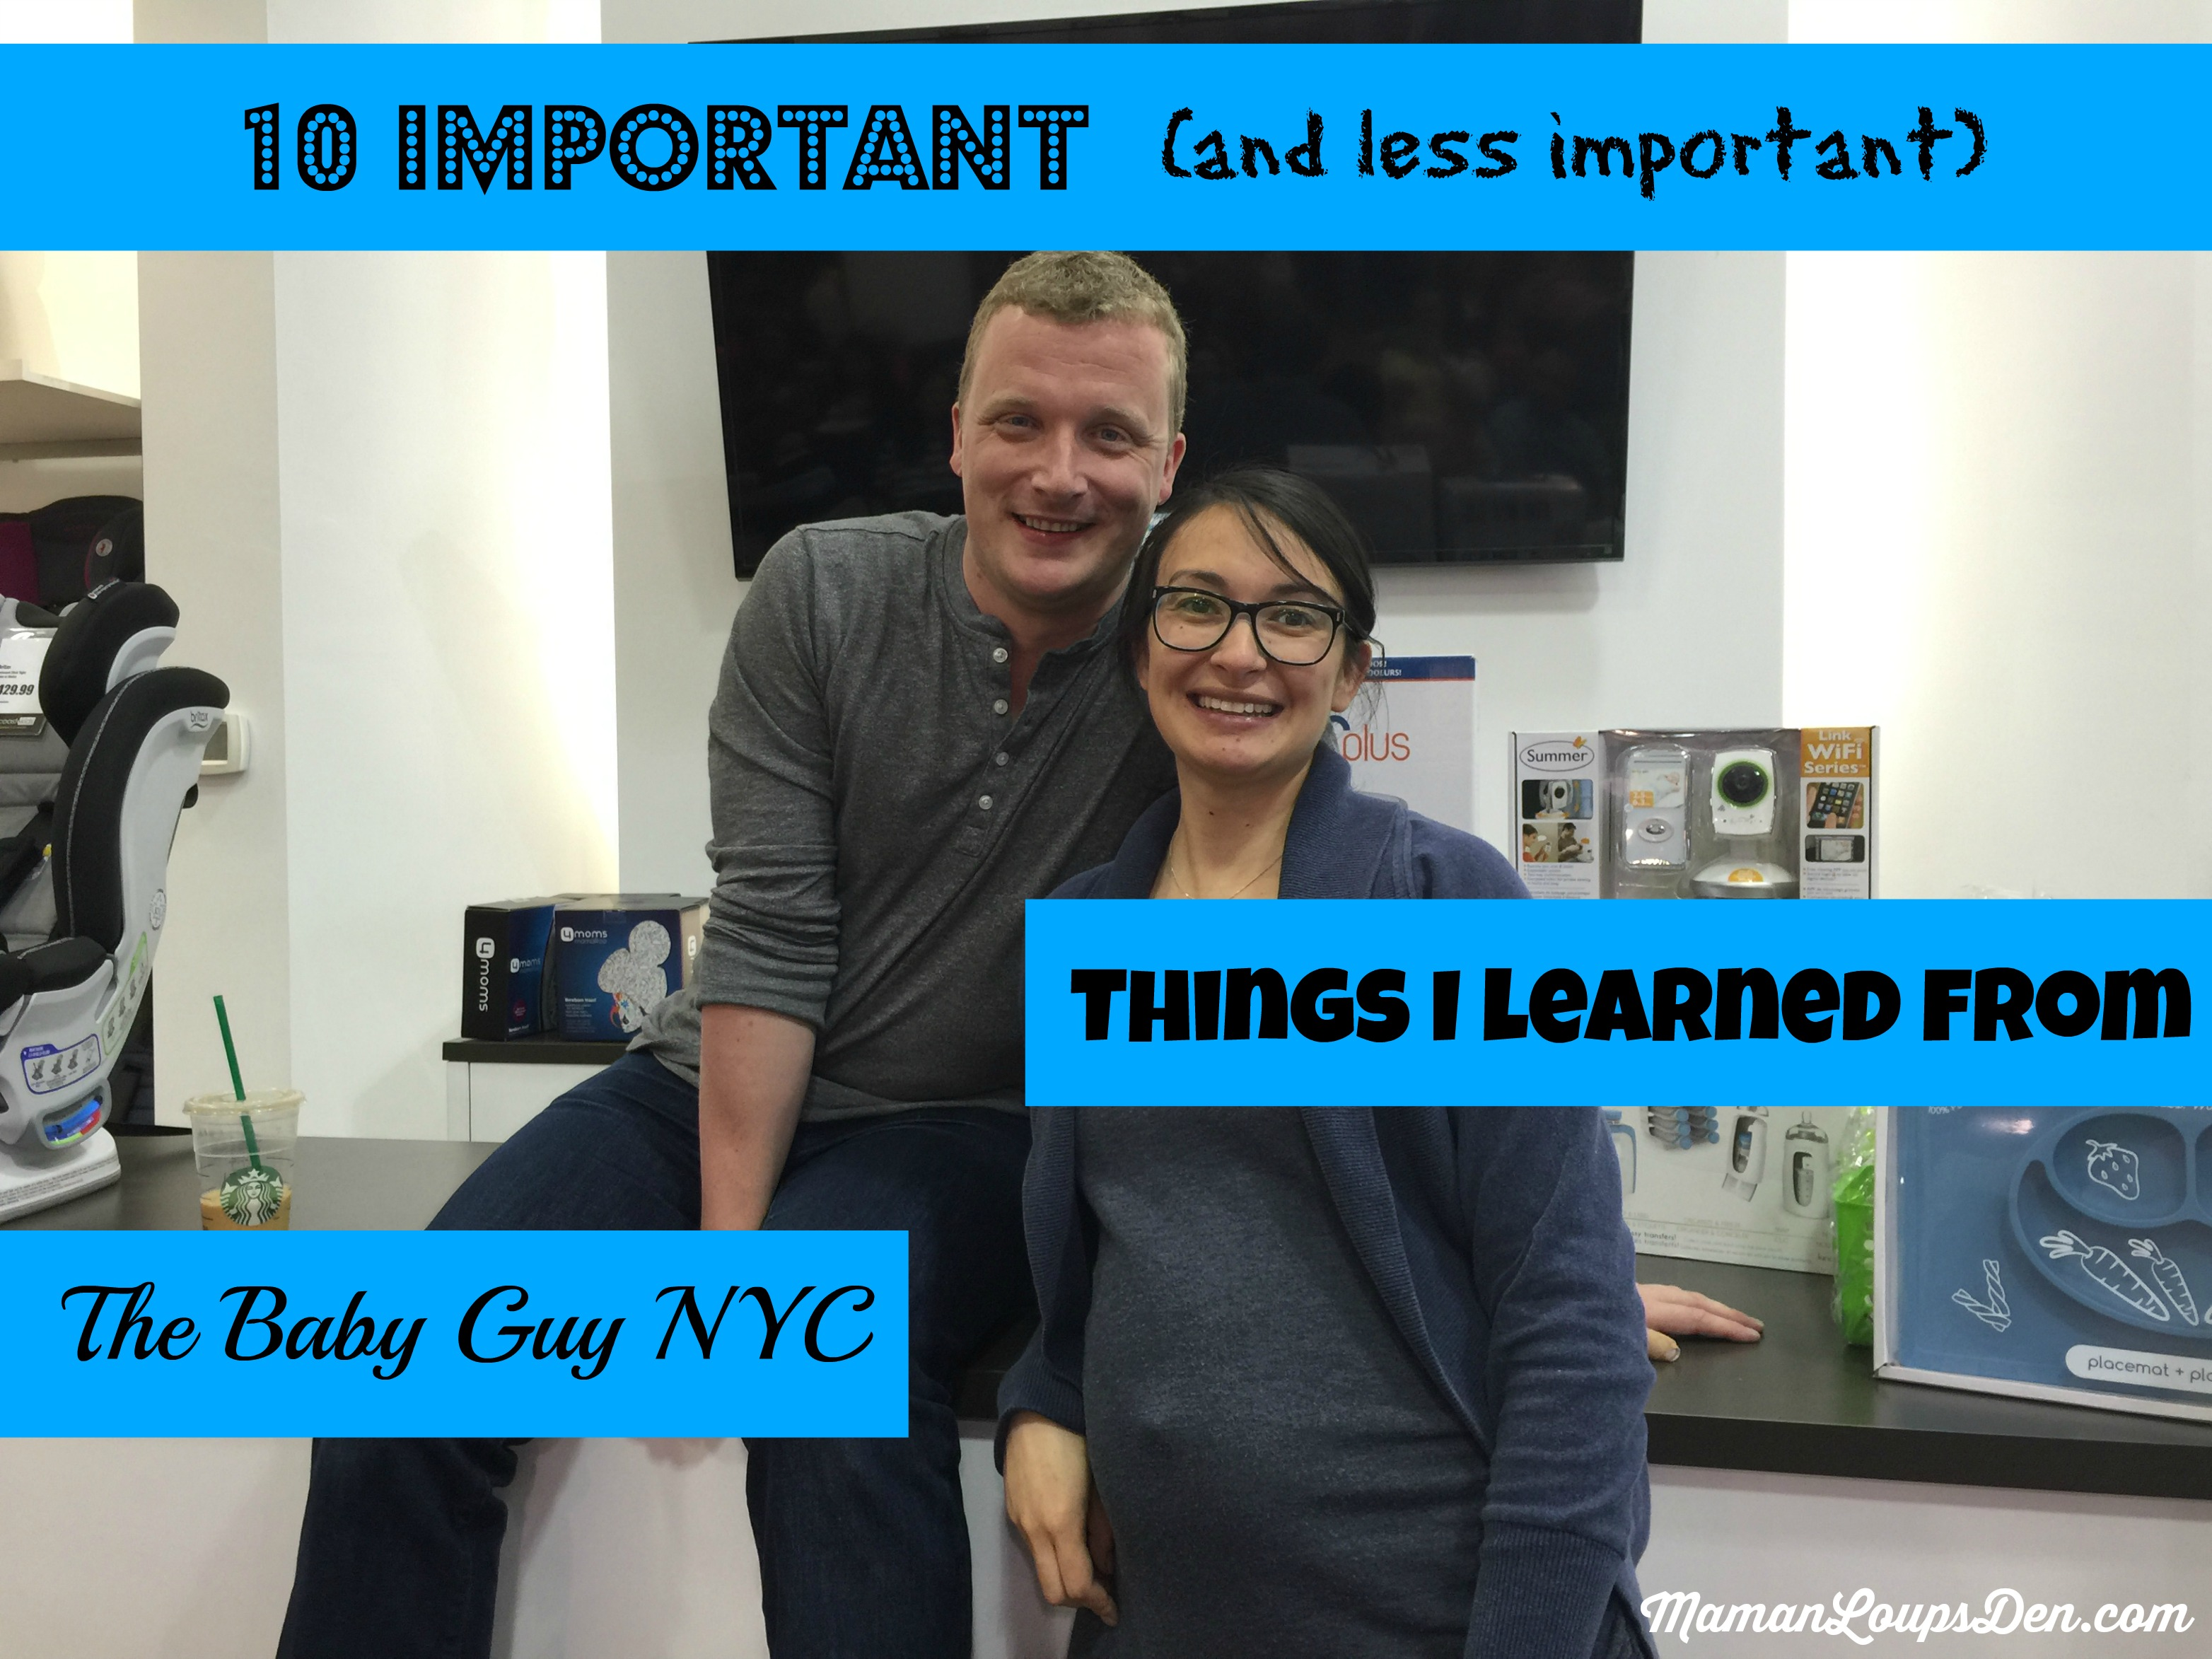 10 Important (and less important) things I learned from The Baby Guy NYC